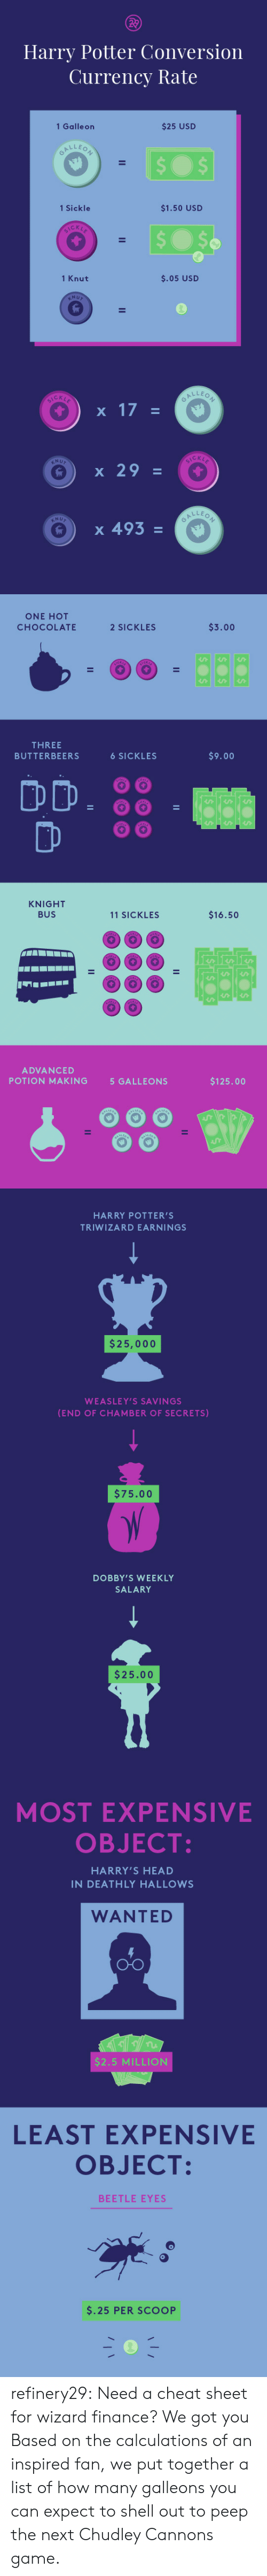 Finance, Harry Potter, and Head: Harry Potter Conversion  Currency Rate  1 Galle on  $25 USD  1 Sickle  $1.50 USD  CK  1 Knut  $.05 USD  C K L  CKL  x 29  LLE o  e ) x 493   ONE HOT  CHOCOLATE  2 SICKLES  $3.00  THREE  BUTTERBEERS  6 SICKLES  $9.00  DD·88  KNIGHT  BUS  11 SICKLES  $16.50  ADVANCED  POTION MAKING  5 GALLEONS  $125.00   HARRY POTTER'S  TRIWIZARD EARNINGS  $25,000  WEASLEY'S SAVINGS  (END OF CHAMBER OF SECRETS)  $75.00  DOBBY'S WEEKLY  SALARY  $25.00   MOST EXPENSIVE  OBJECT  HARRY'S HEAD  IN DEATHLY HALLOWS  WANTED  O-O  $2.5 MILLION  LEAST EXPENSIVE  OBJECT:  BEETLE EYES  $.25 PER SCOOP refinery29:  Need a cheat sheet for wizard finance? We got you Based on the calculations of an inspired fan, we put together a list of how many galleons you can expect to shell out to peep the next Chudley Cannons game.